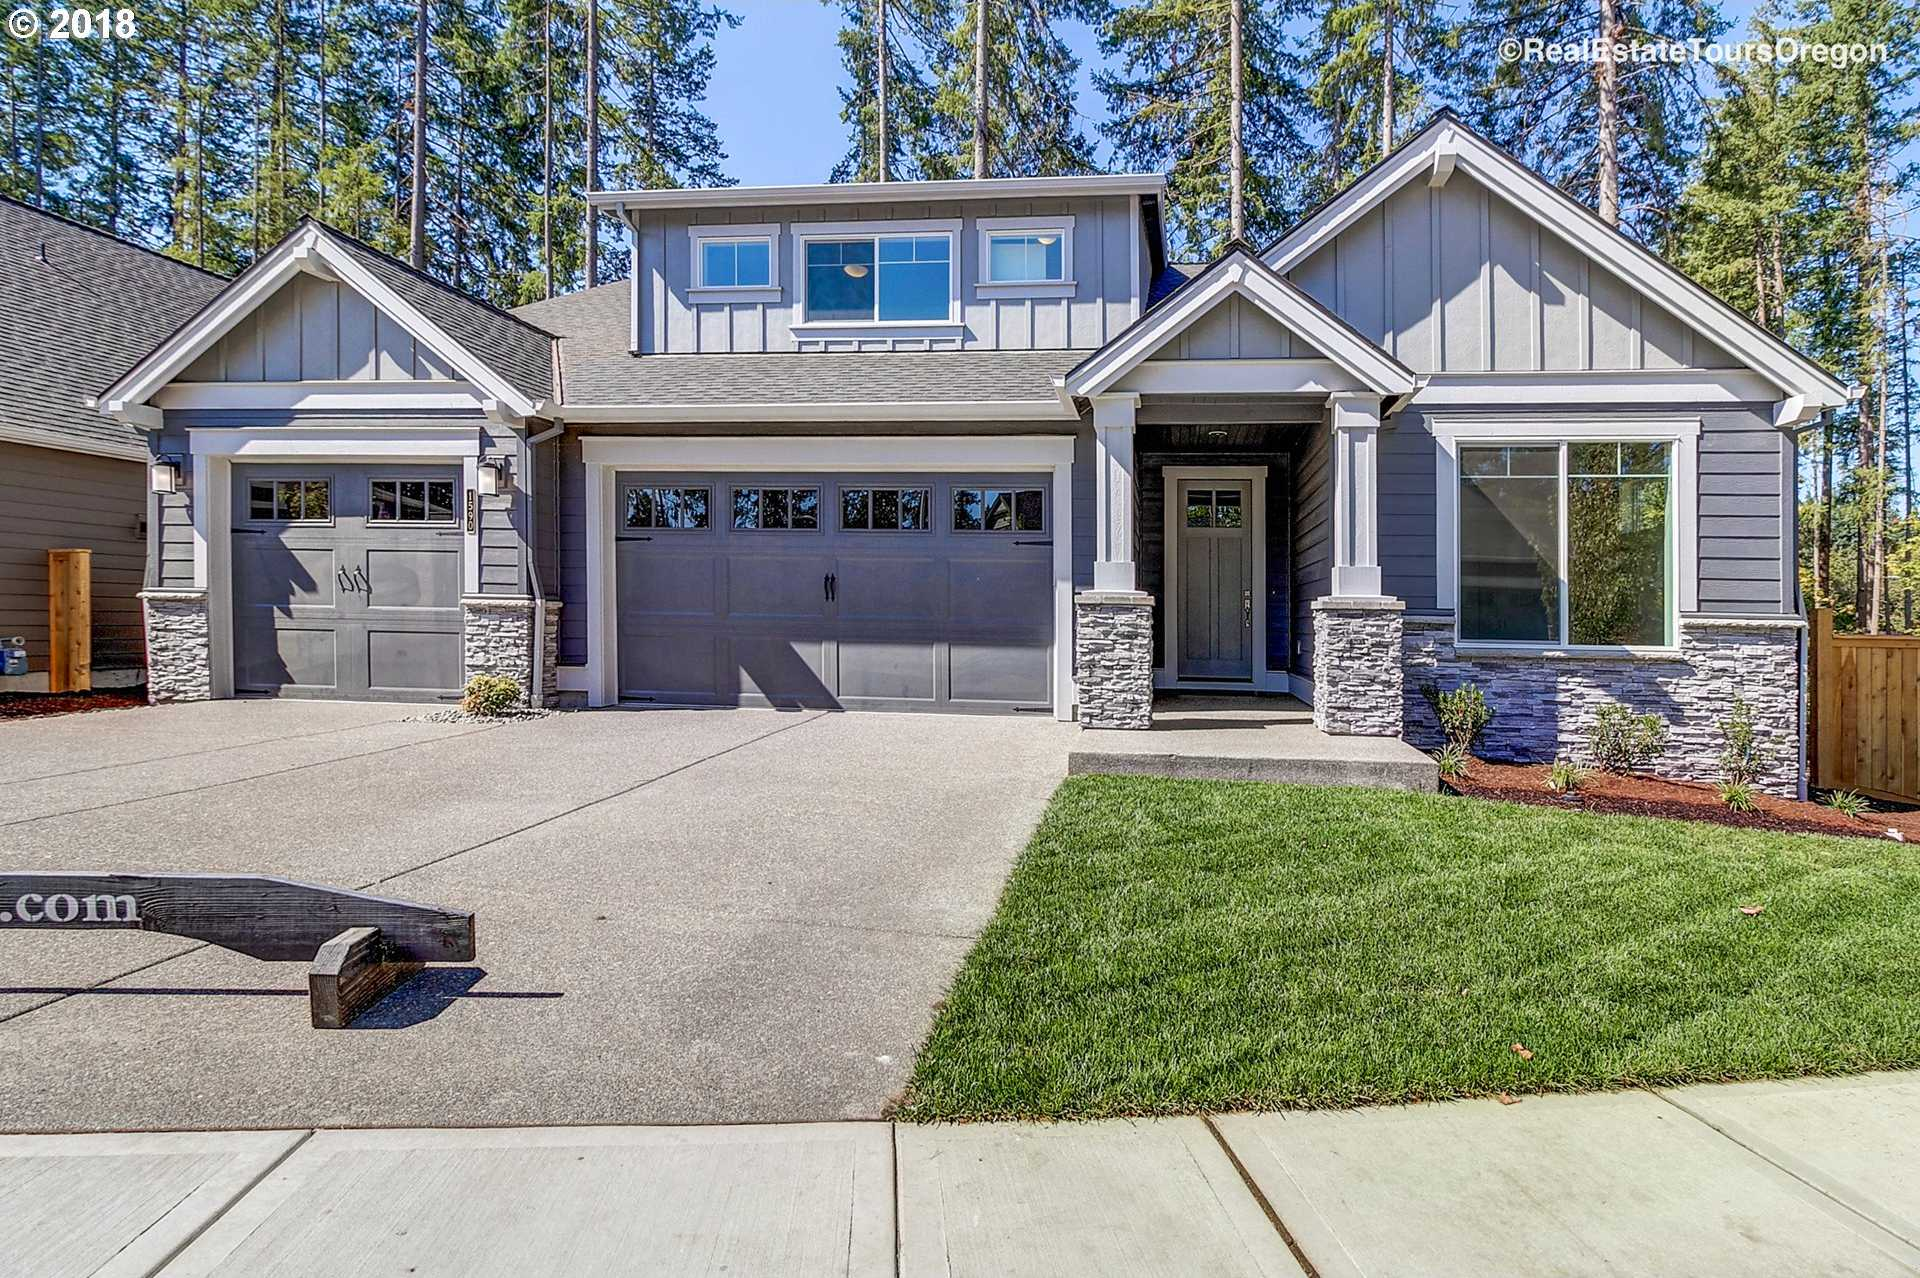 $765,000 - 4Br/3Ba -  for Sale in Charbonneau Range, Wilsonville